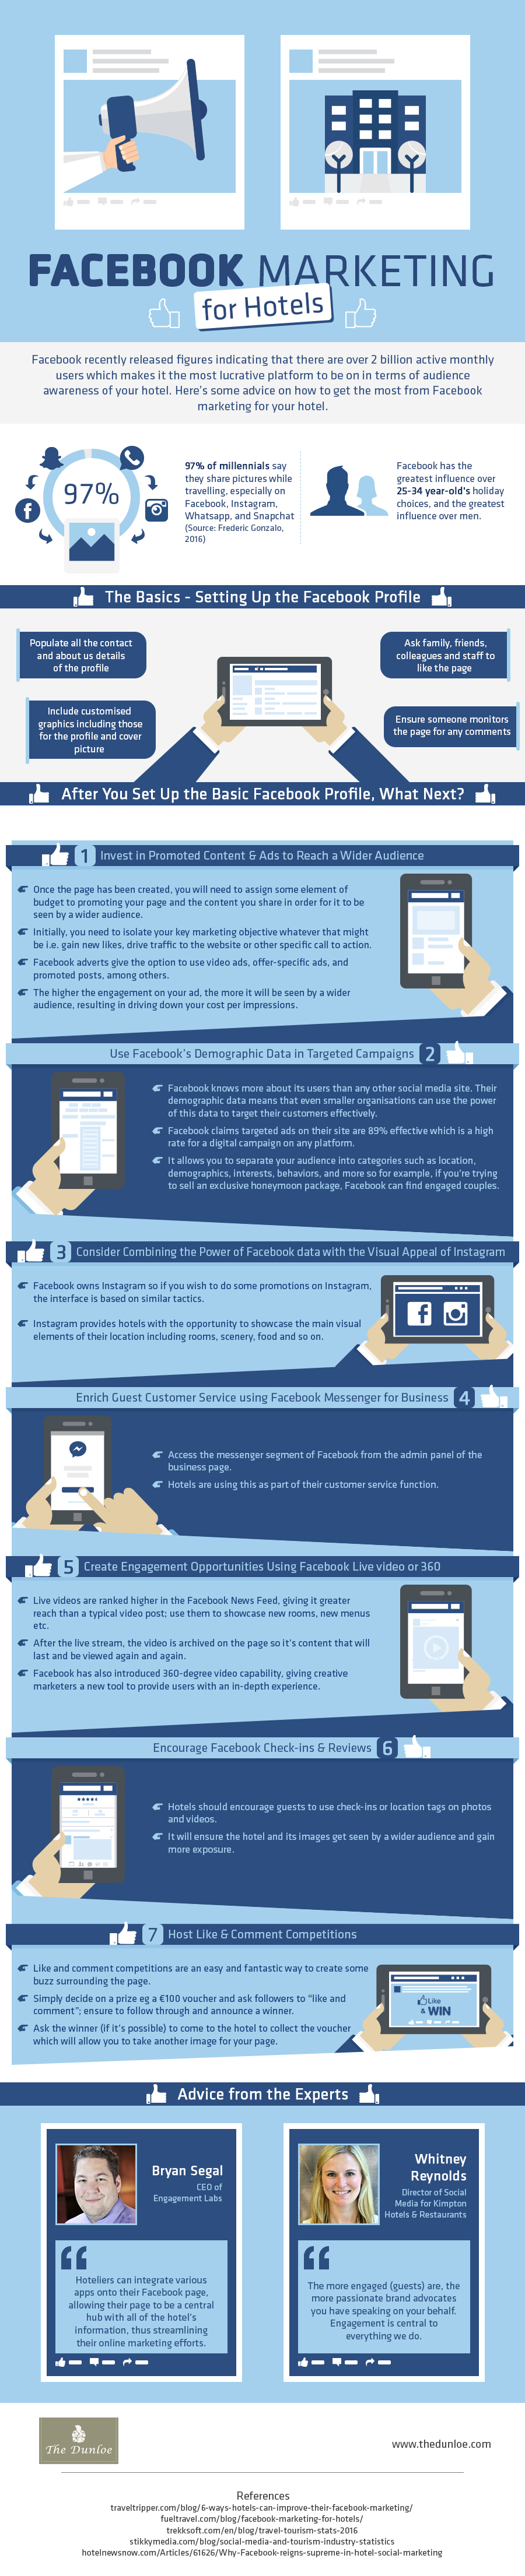 Facebook Marketing For Hotels Infographic